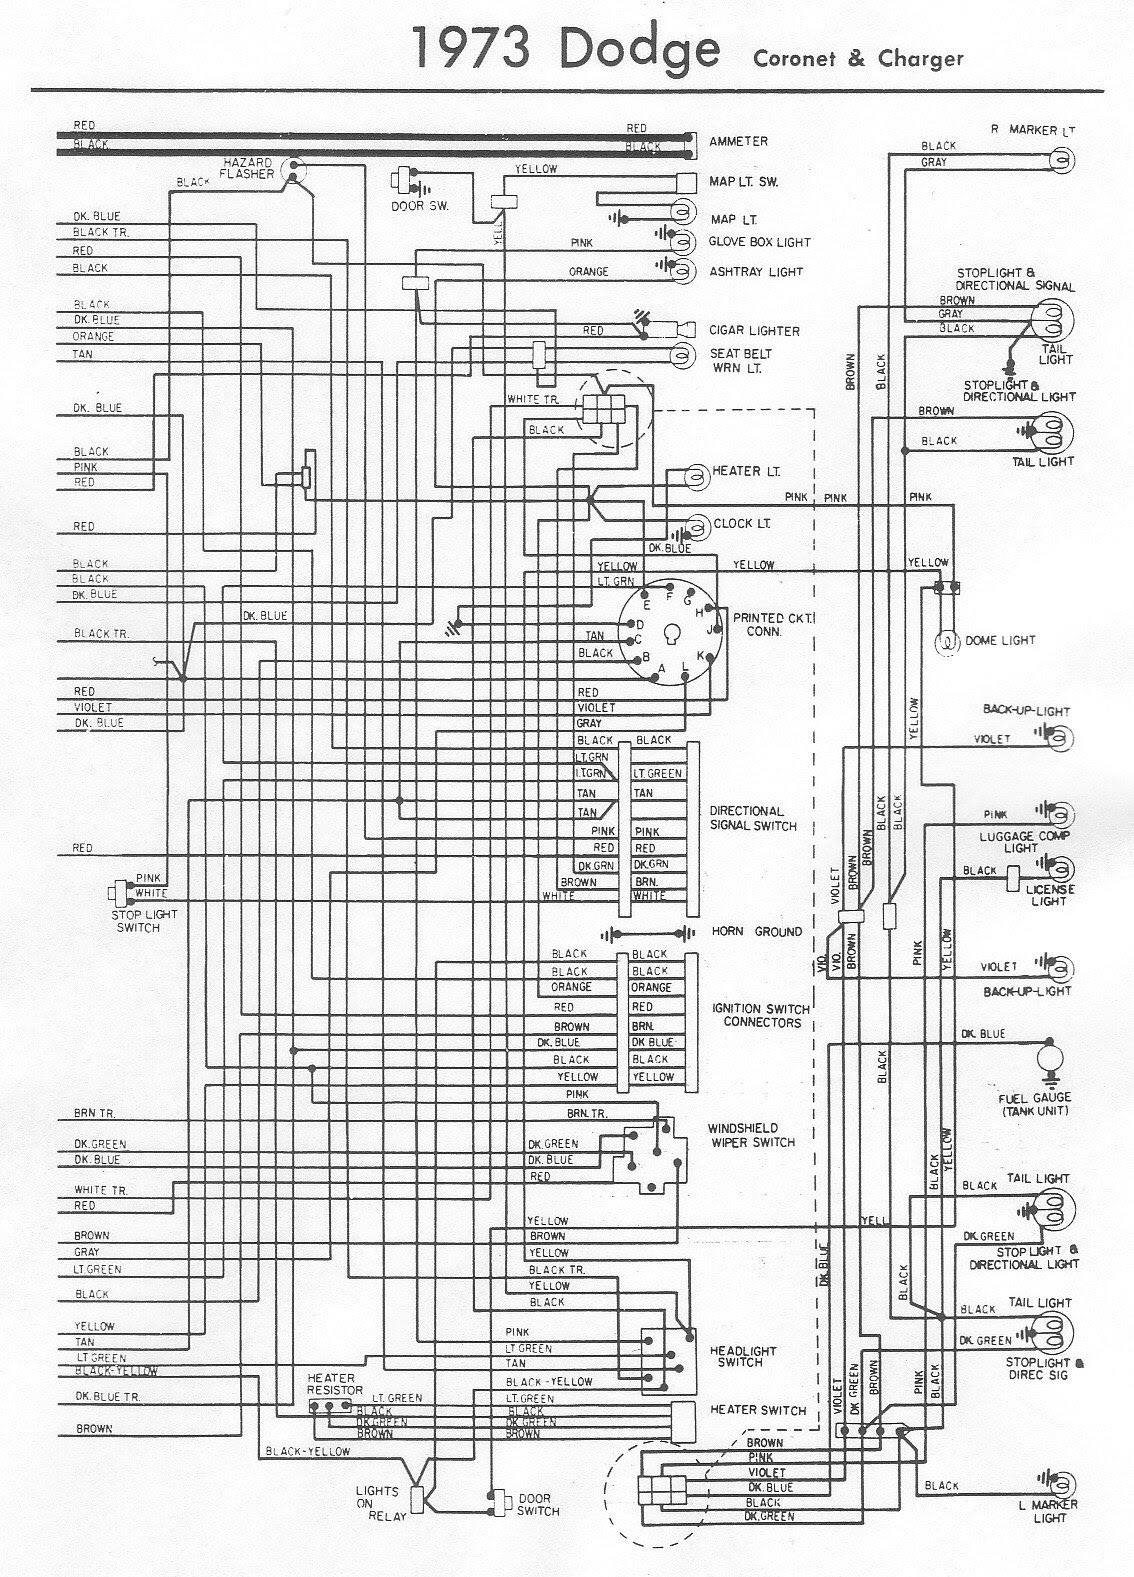 73 Challenger Wiring Diagram Fl80 Fuse Box Delco Electronics Losdol2 Cabik Jeanjaures37 Fr